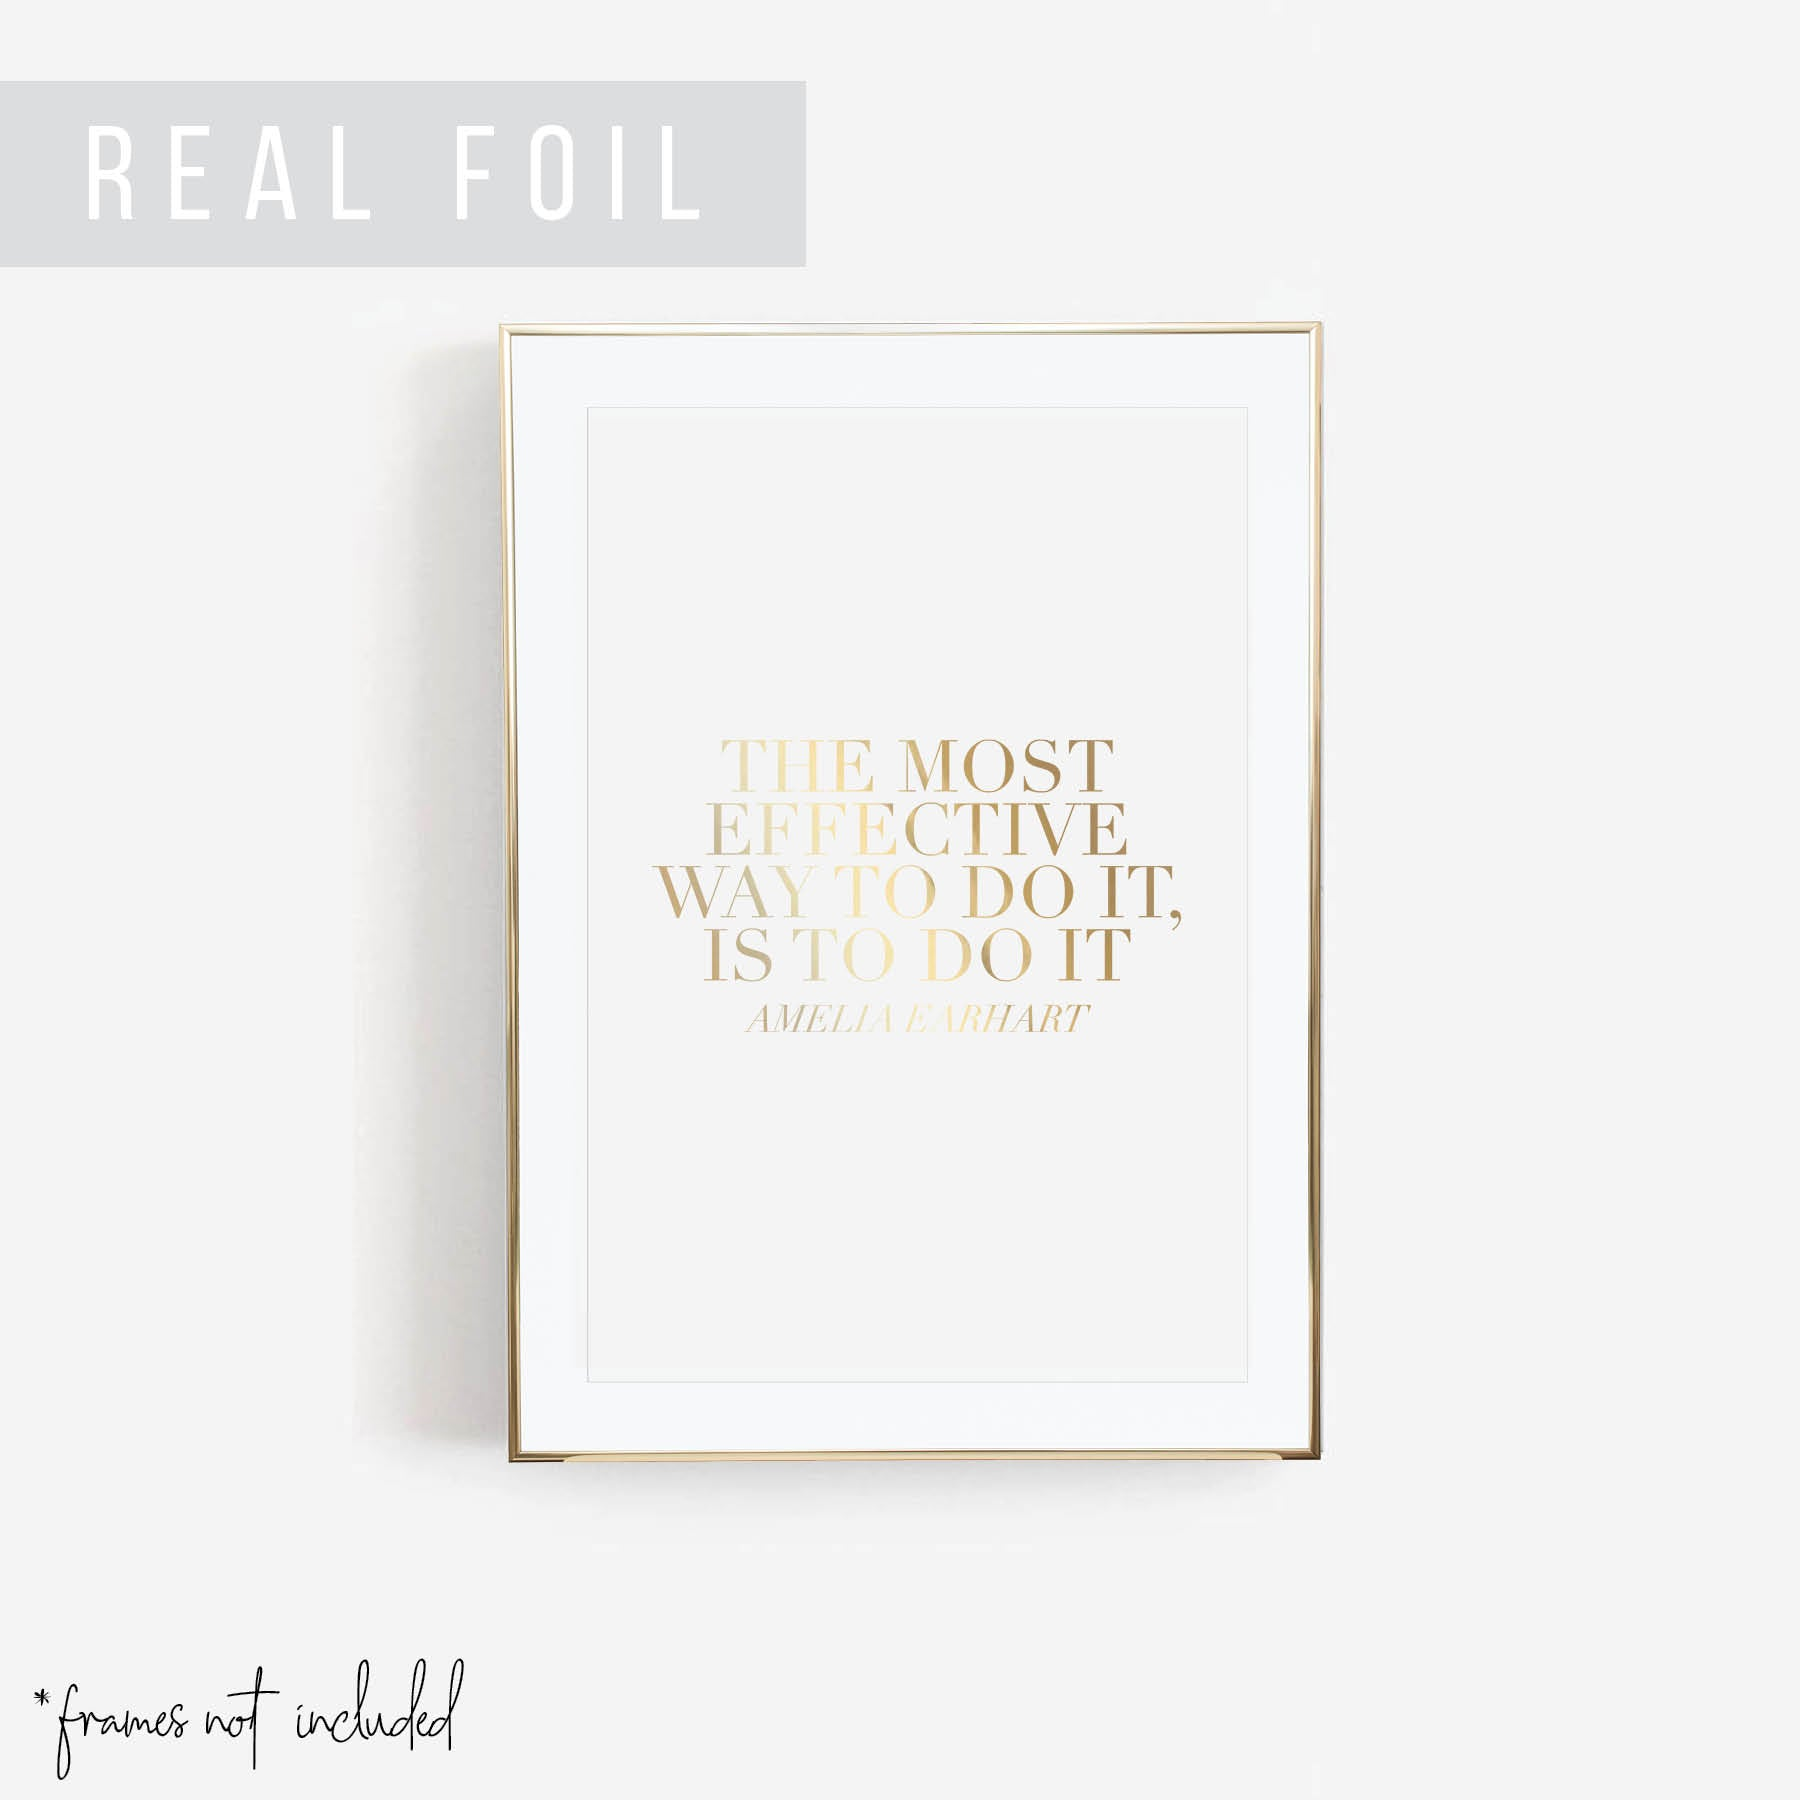 The Most Effective Way to Do It, Is to Do It. -Amelia Earhart Quote Foiled Art Print